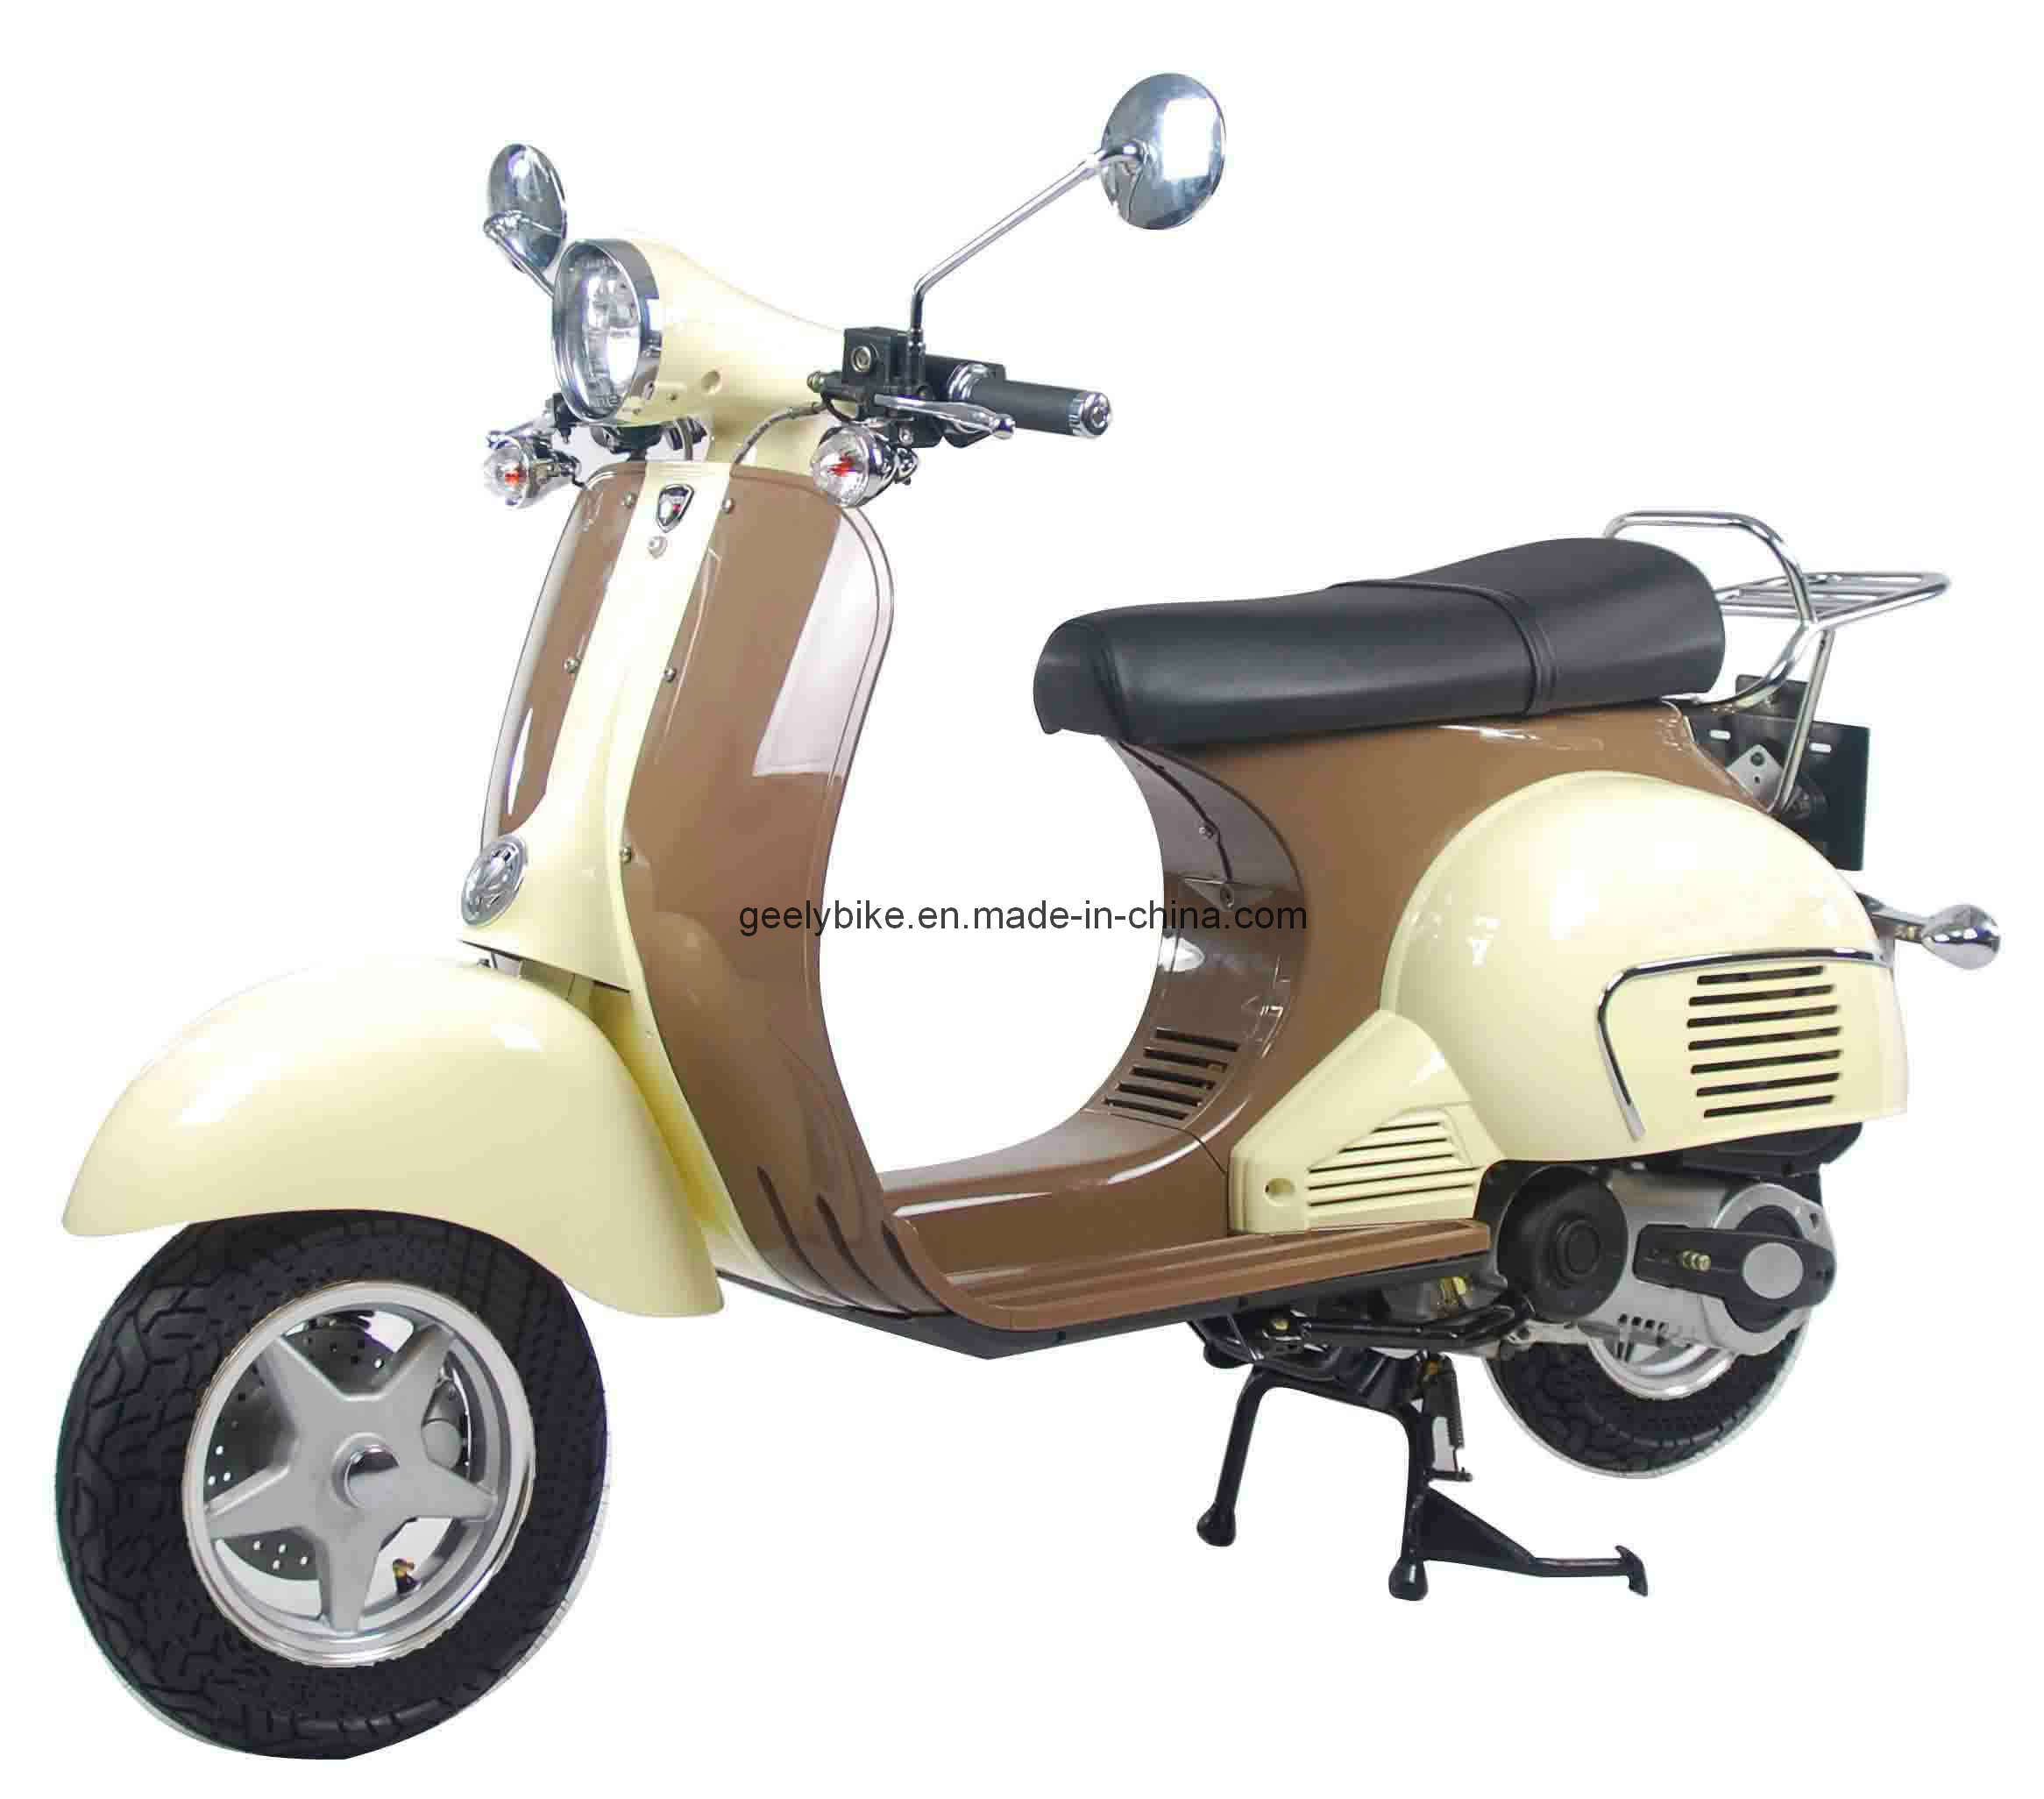 50cc vespe type scooter 50cc vespe type scooter fornecido